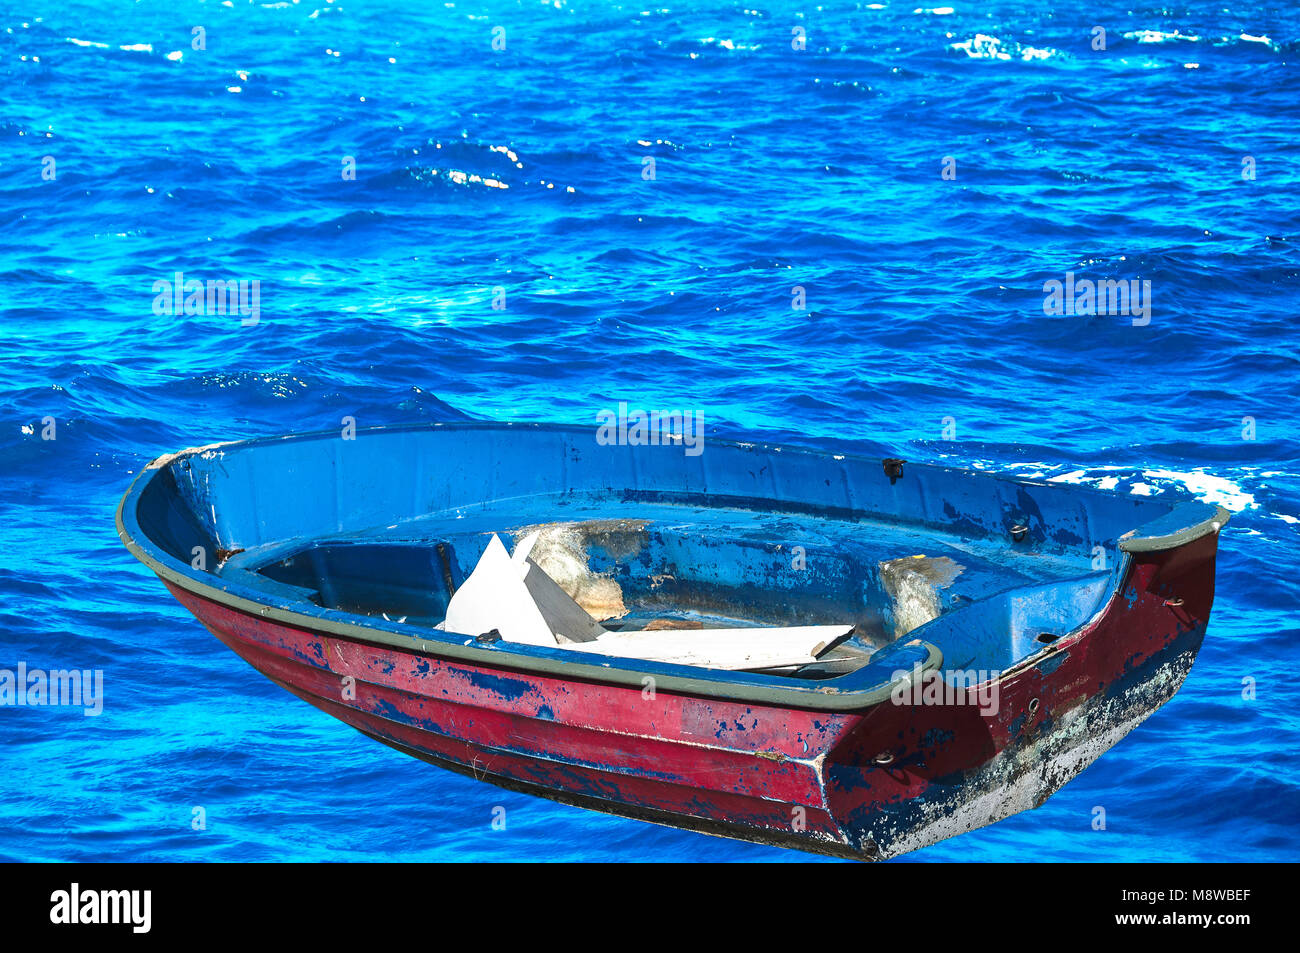 empty boat on the ocean - Stock Image